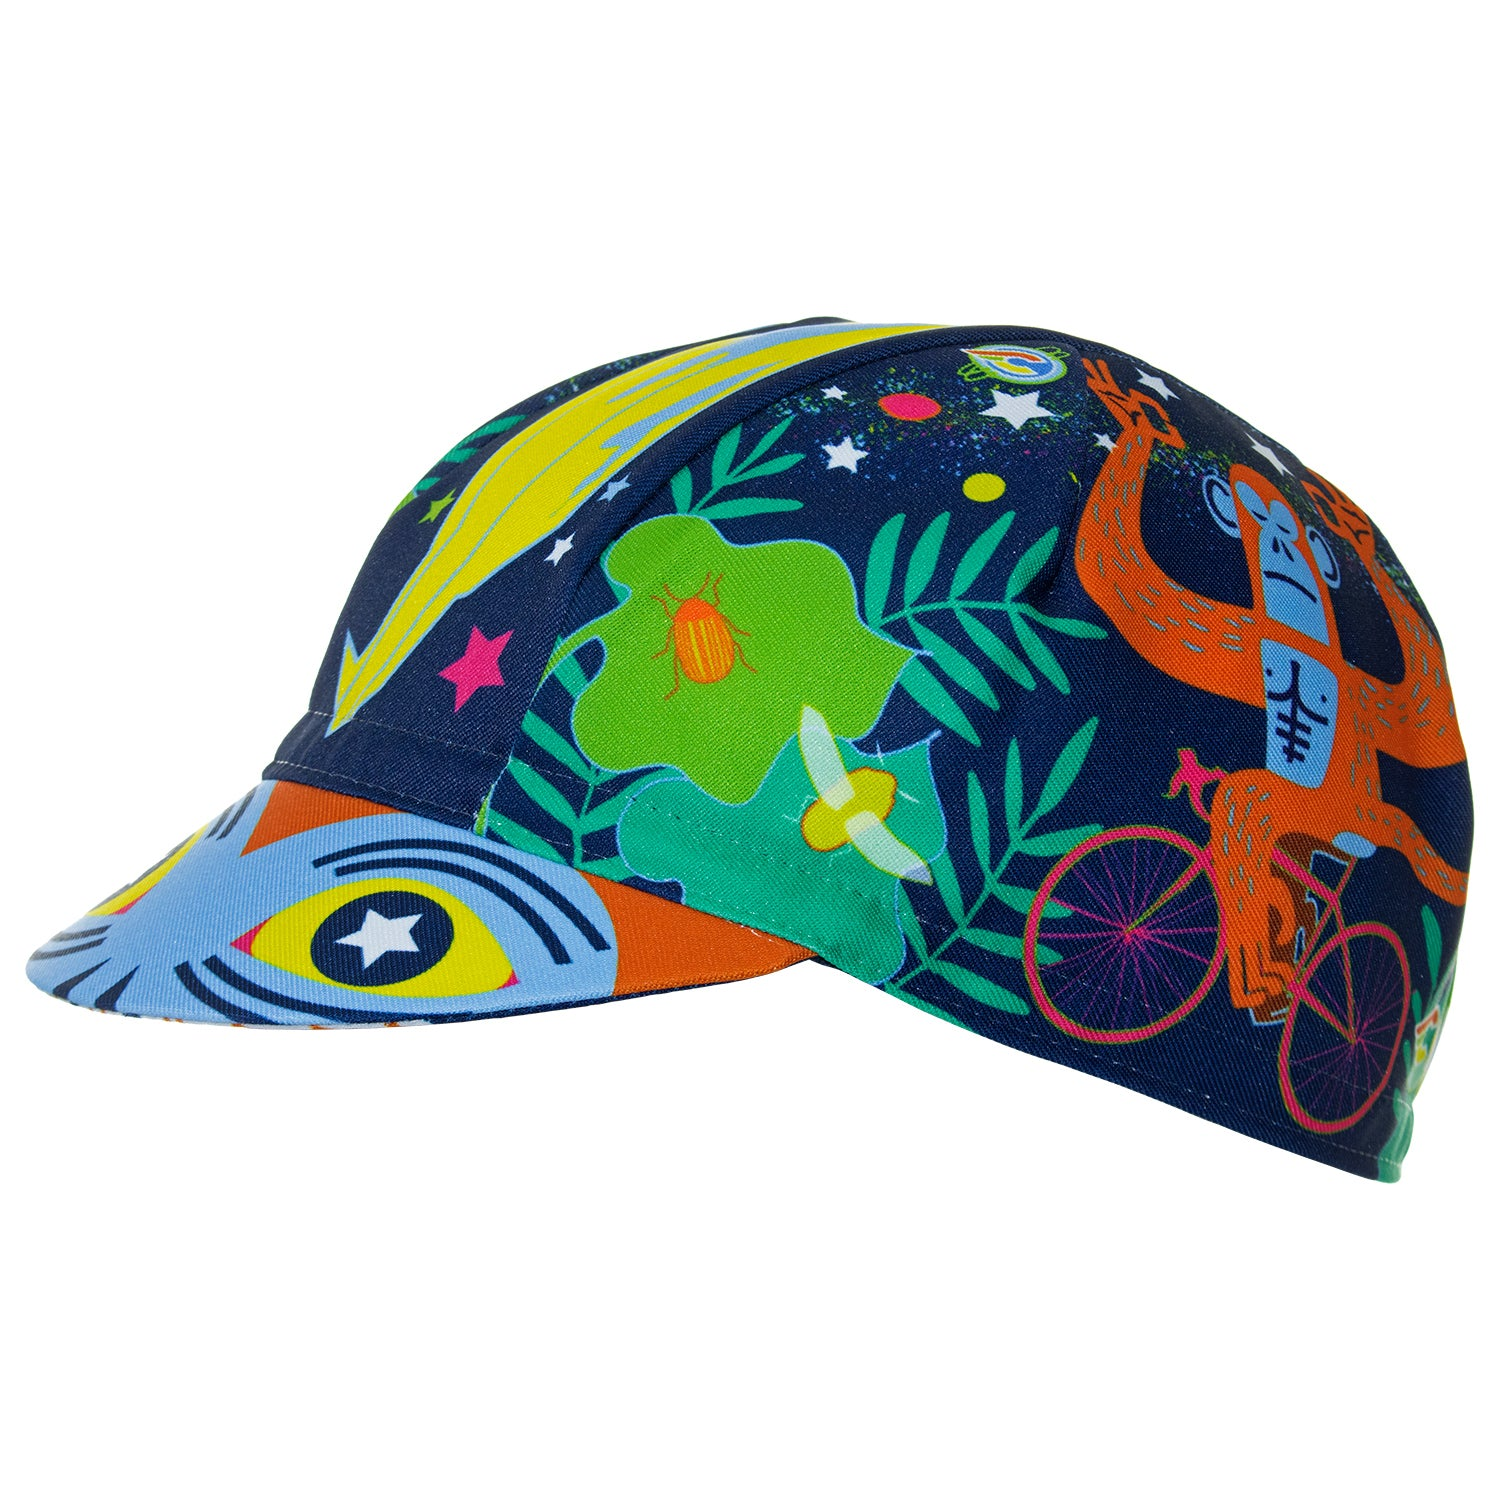 Cinelli Jungle Zen Cotton Cycling Cap